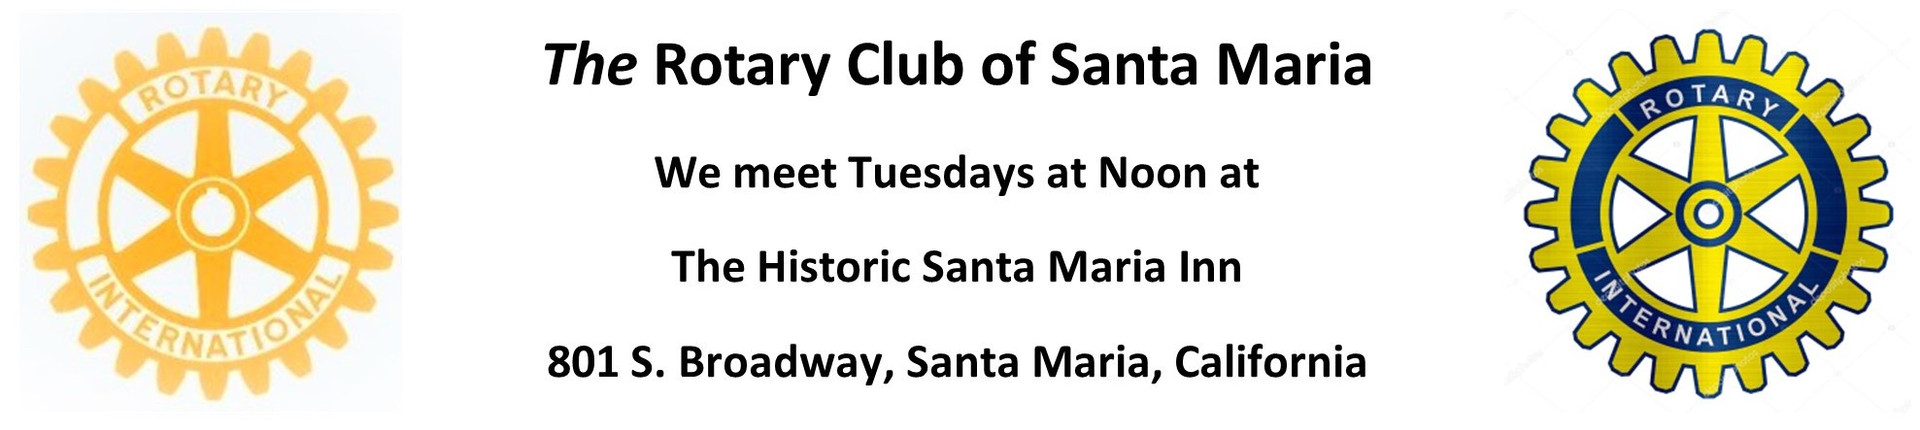 Rotary Club Noontime